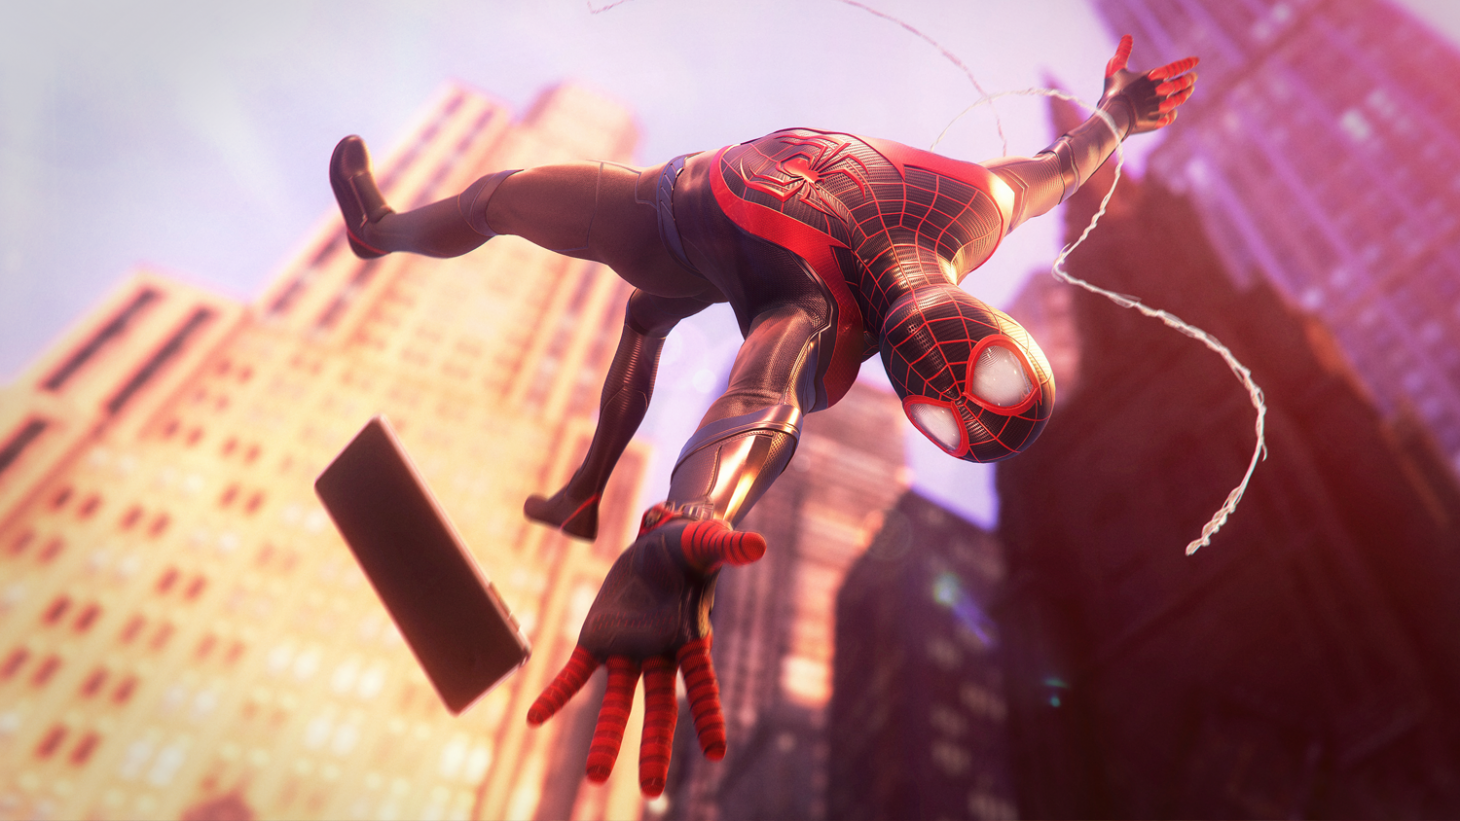 Spider Man Miles Morales Is Missing This Major New York City Landmark Game Informer